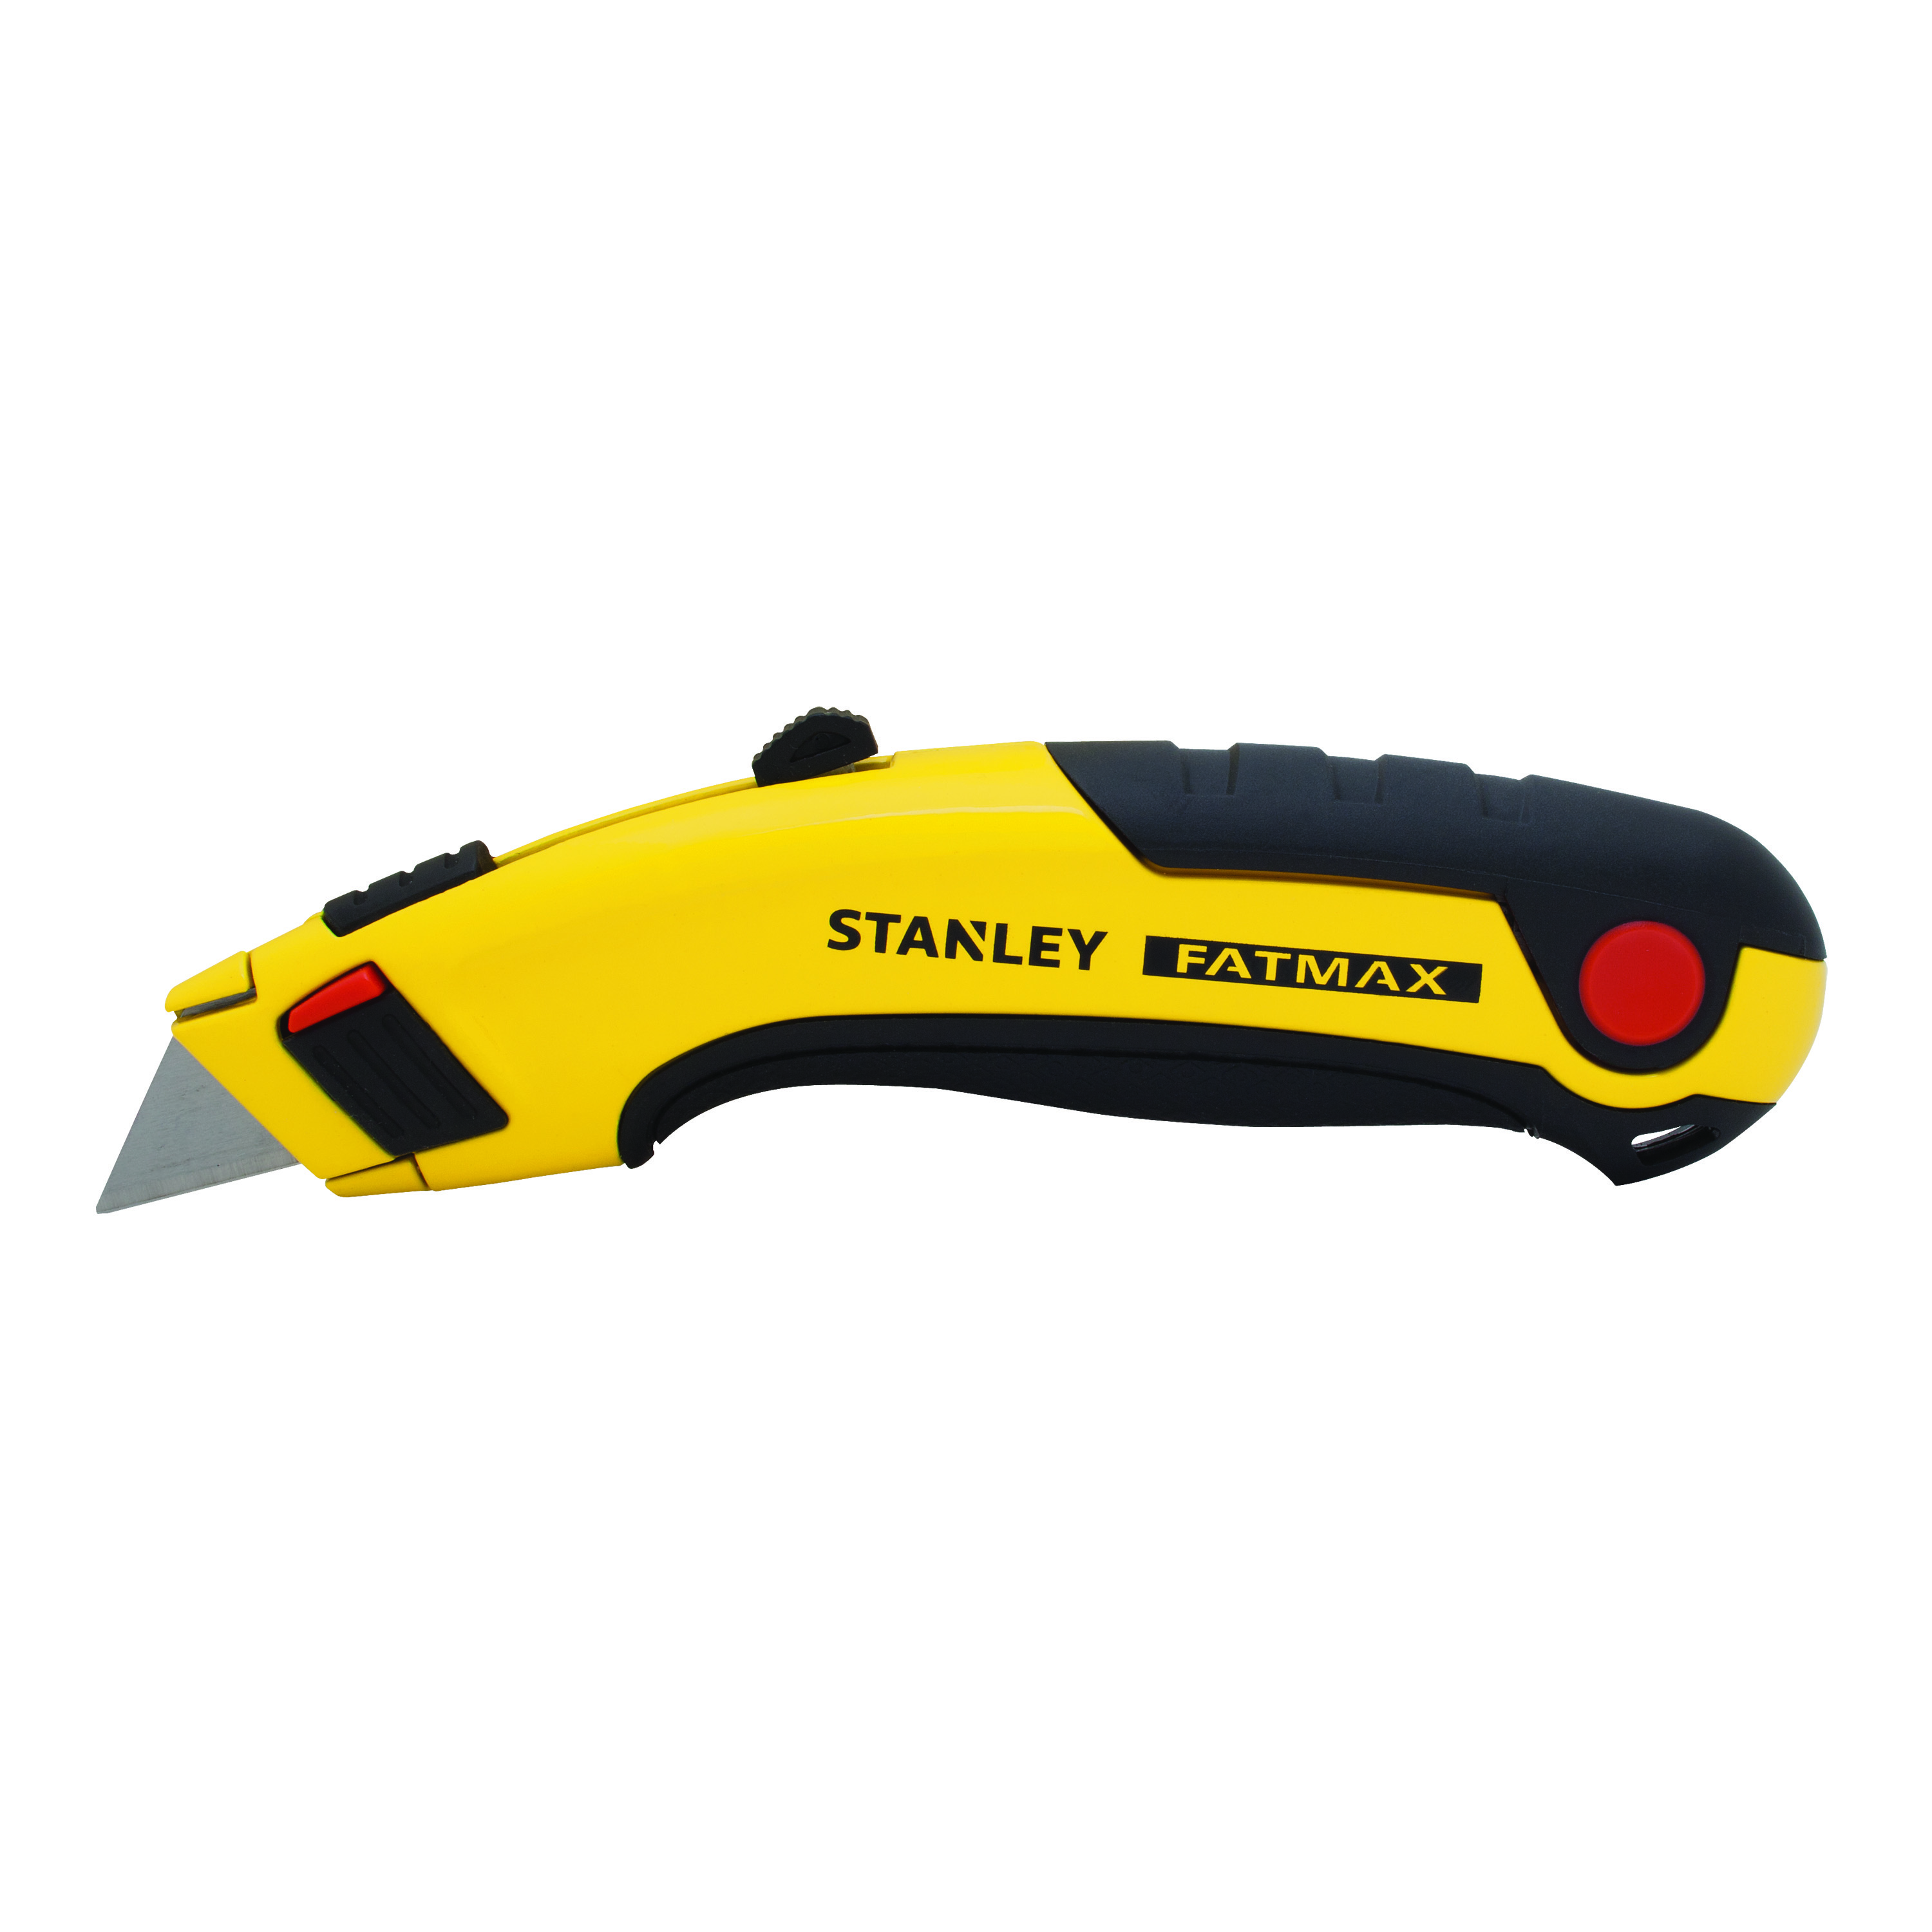 STANLEY FATMAX 10-778W Curved Quick Change Retractable Utility Knife by Stanley Black & Decker